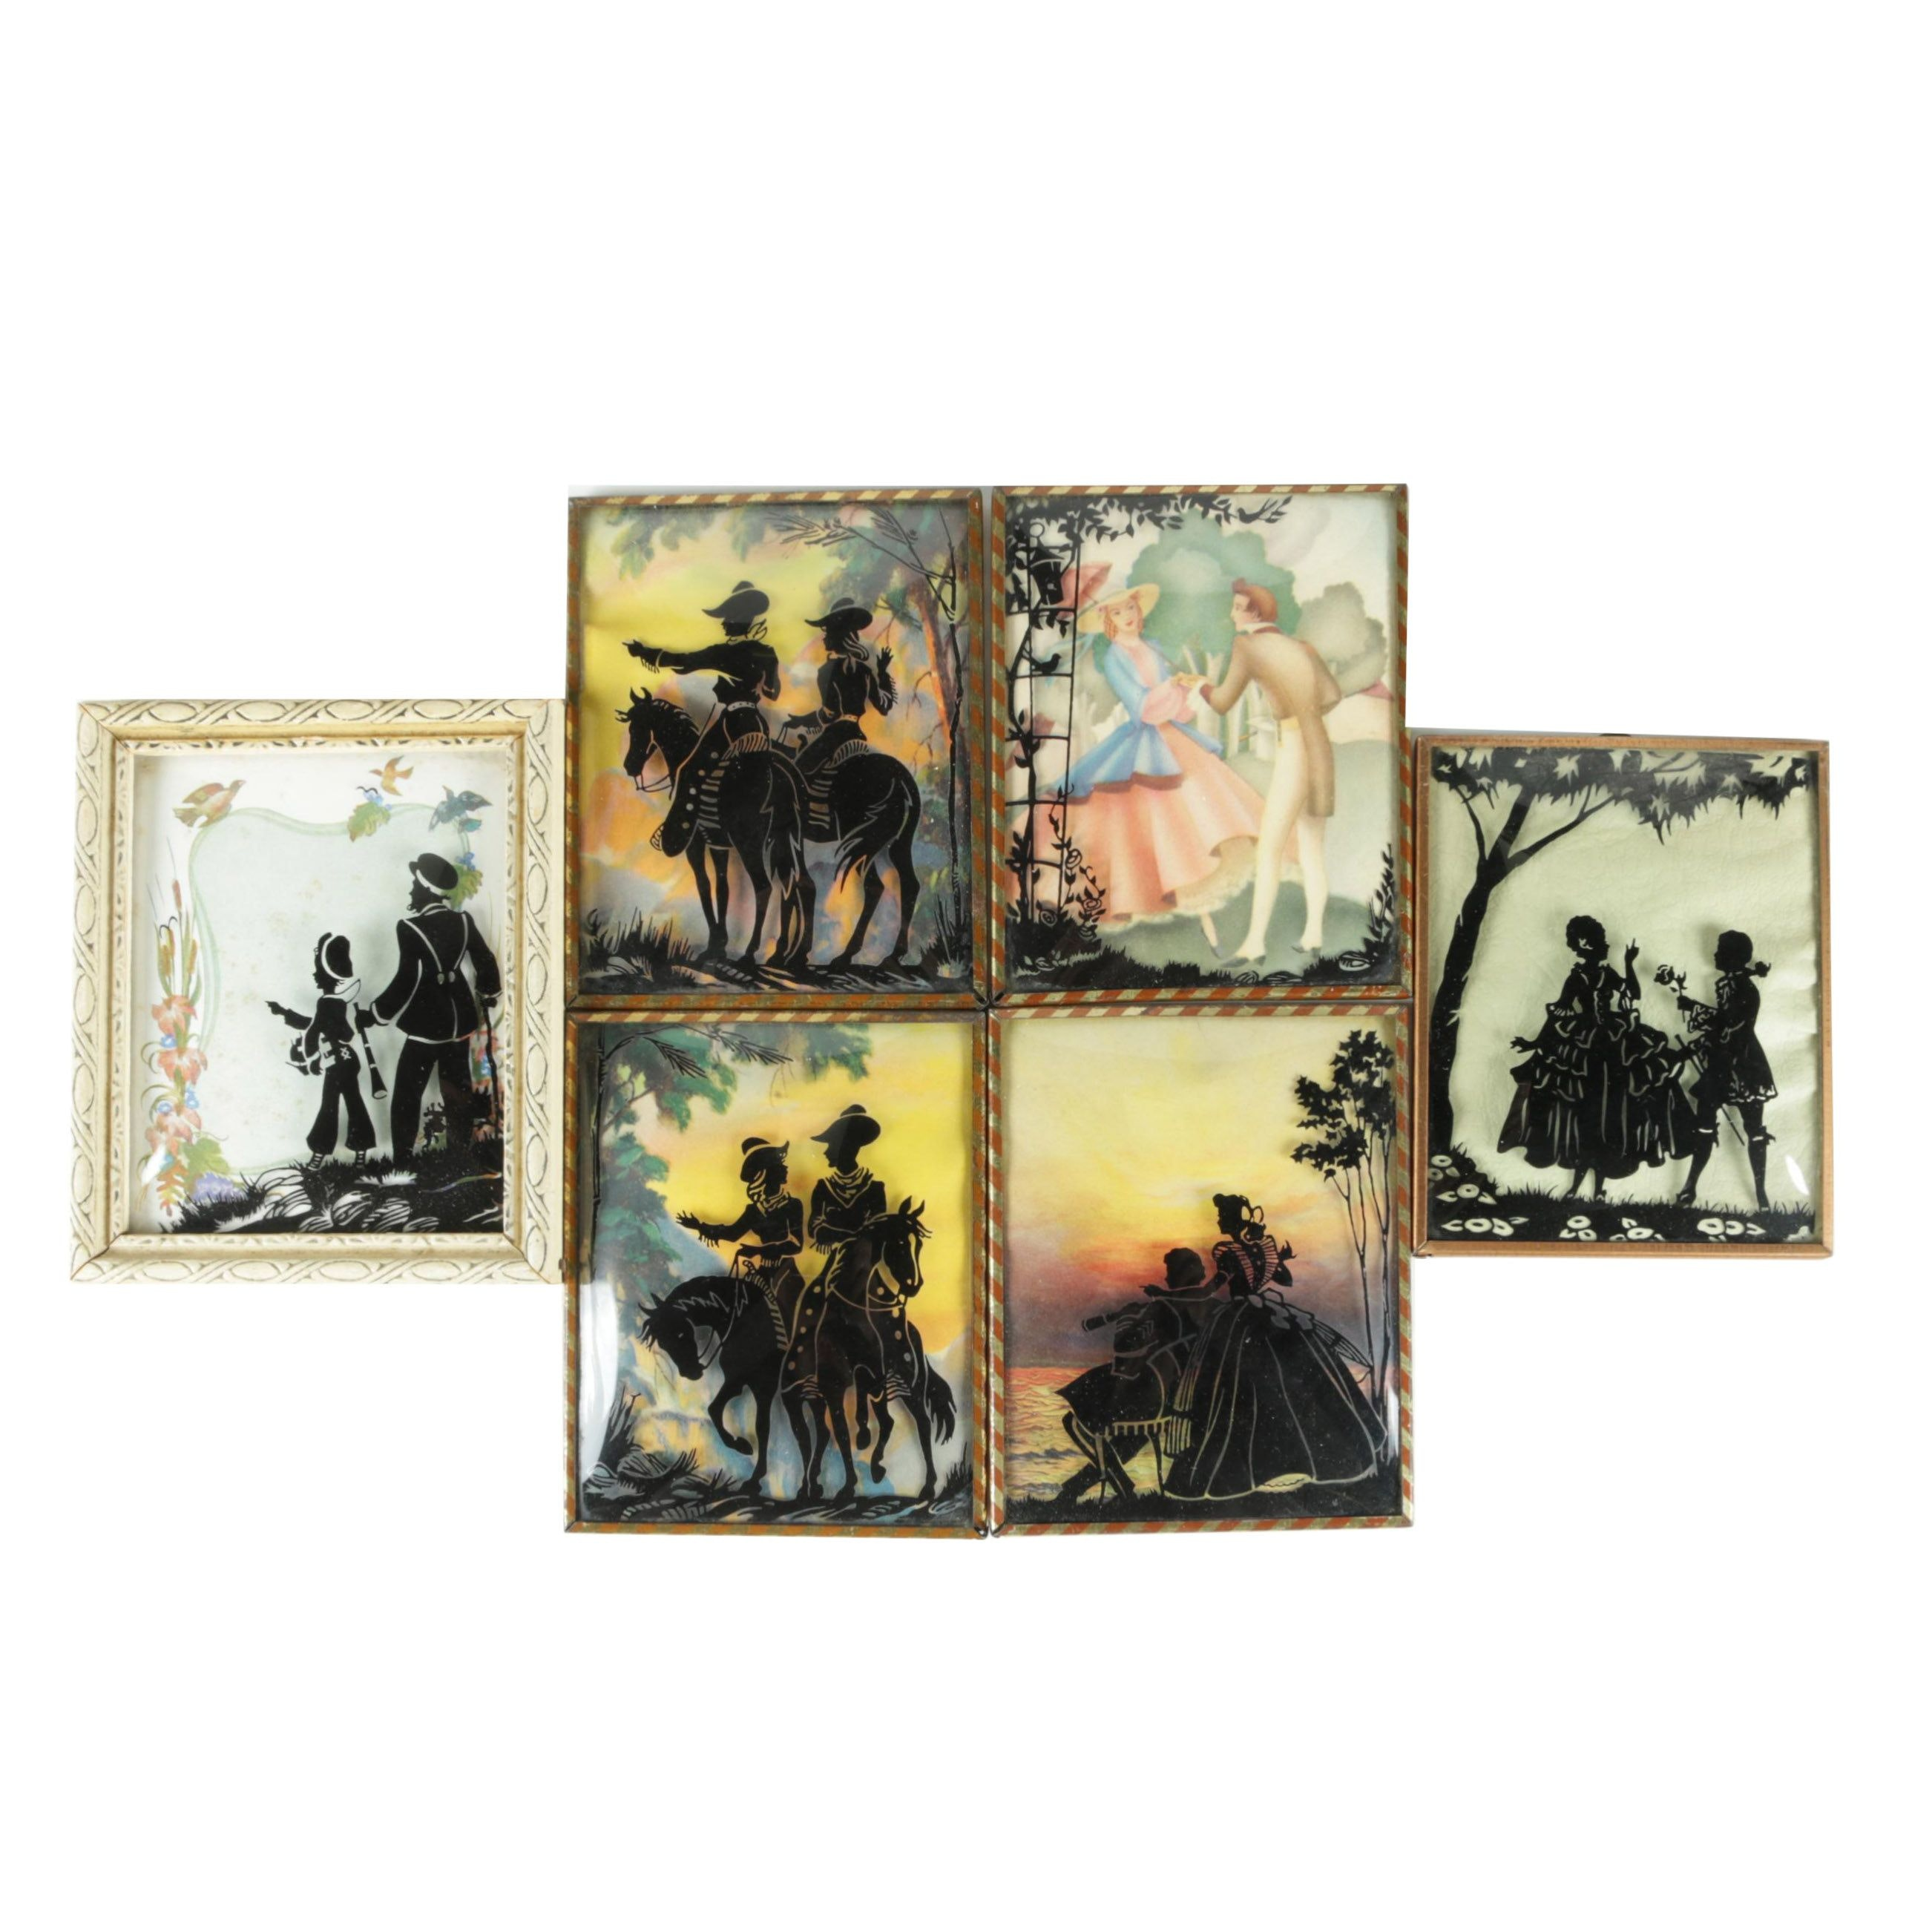 Reverse-Printed Silhouette Portraits on Glass Including Cowboy and Cowgirl